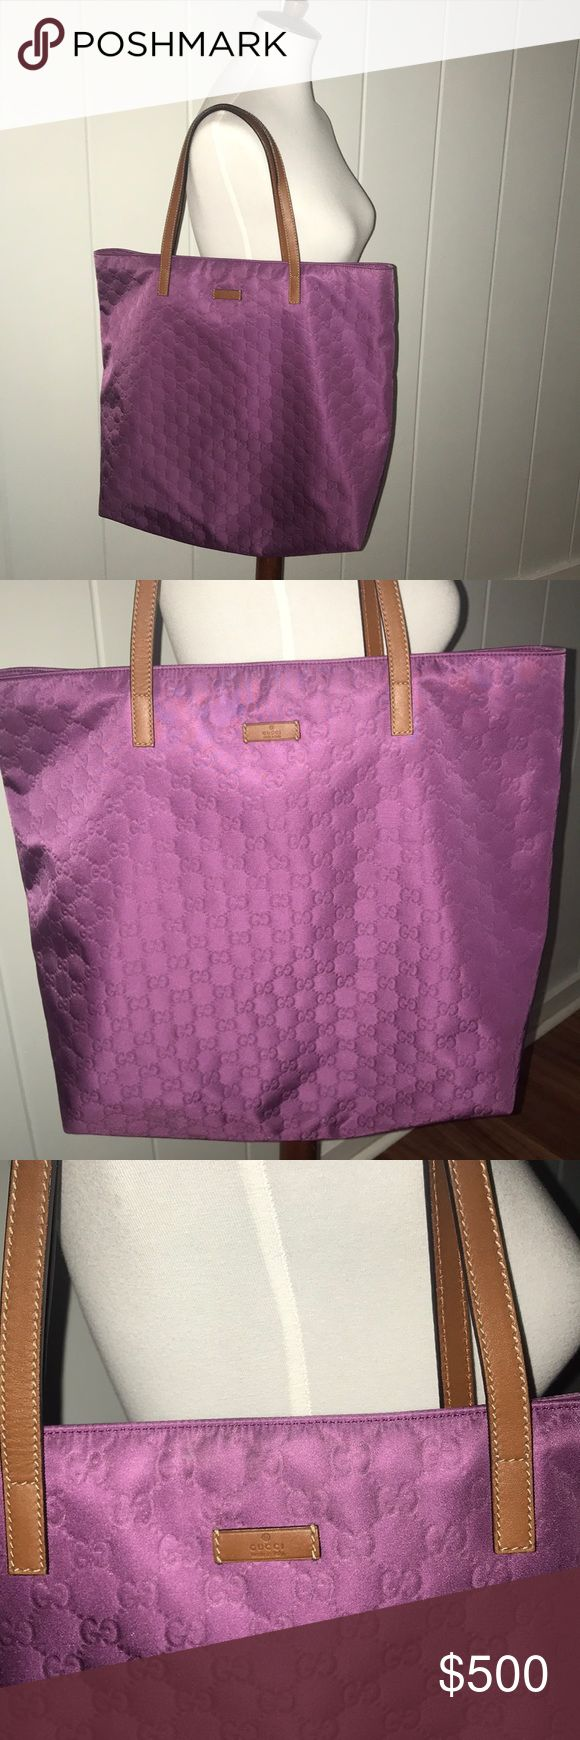 """Gucci guccissima purple tote purse bag authentic Gucci Purple tote bag with canvas lining Clean interior with 2 open pockets and a large zipper pocket The front is in excellent condition and the back shows some spots that I didn't know were there until the flash picked them up. Strap has a small flaw on it.  This bag is really large, about 18"""" front and top to bottom not including the strap is about 15"""" Strap goes up about 8"""" Gucci Bags Totes"""